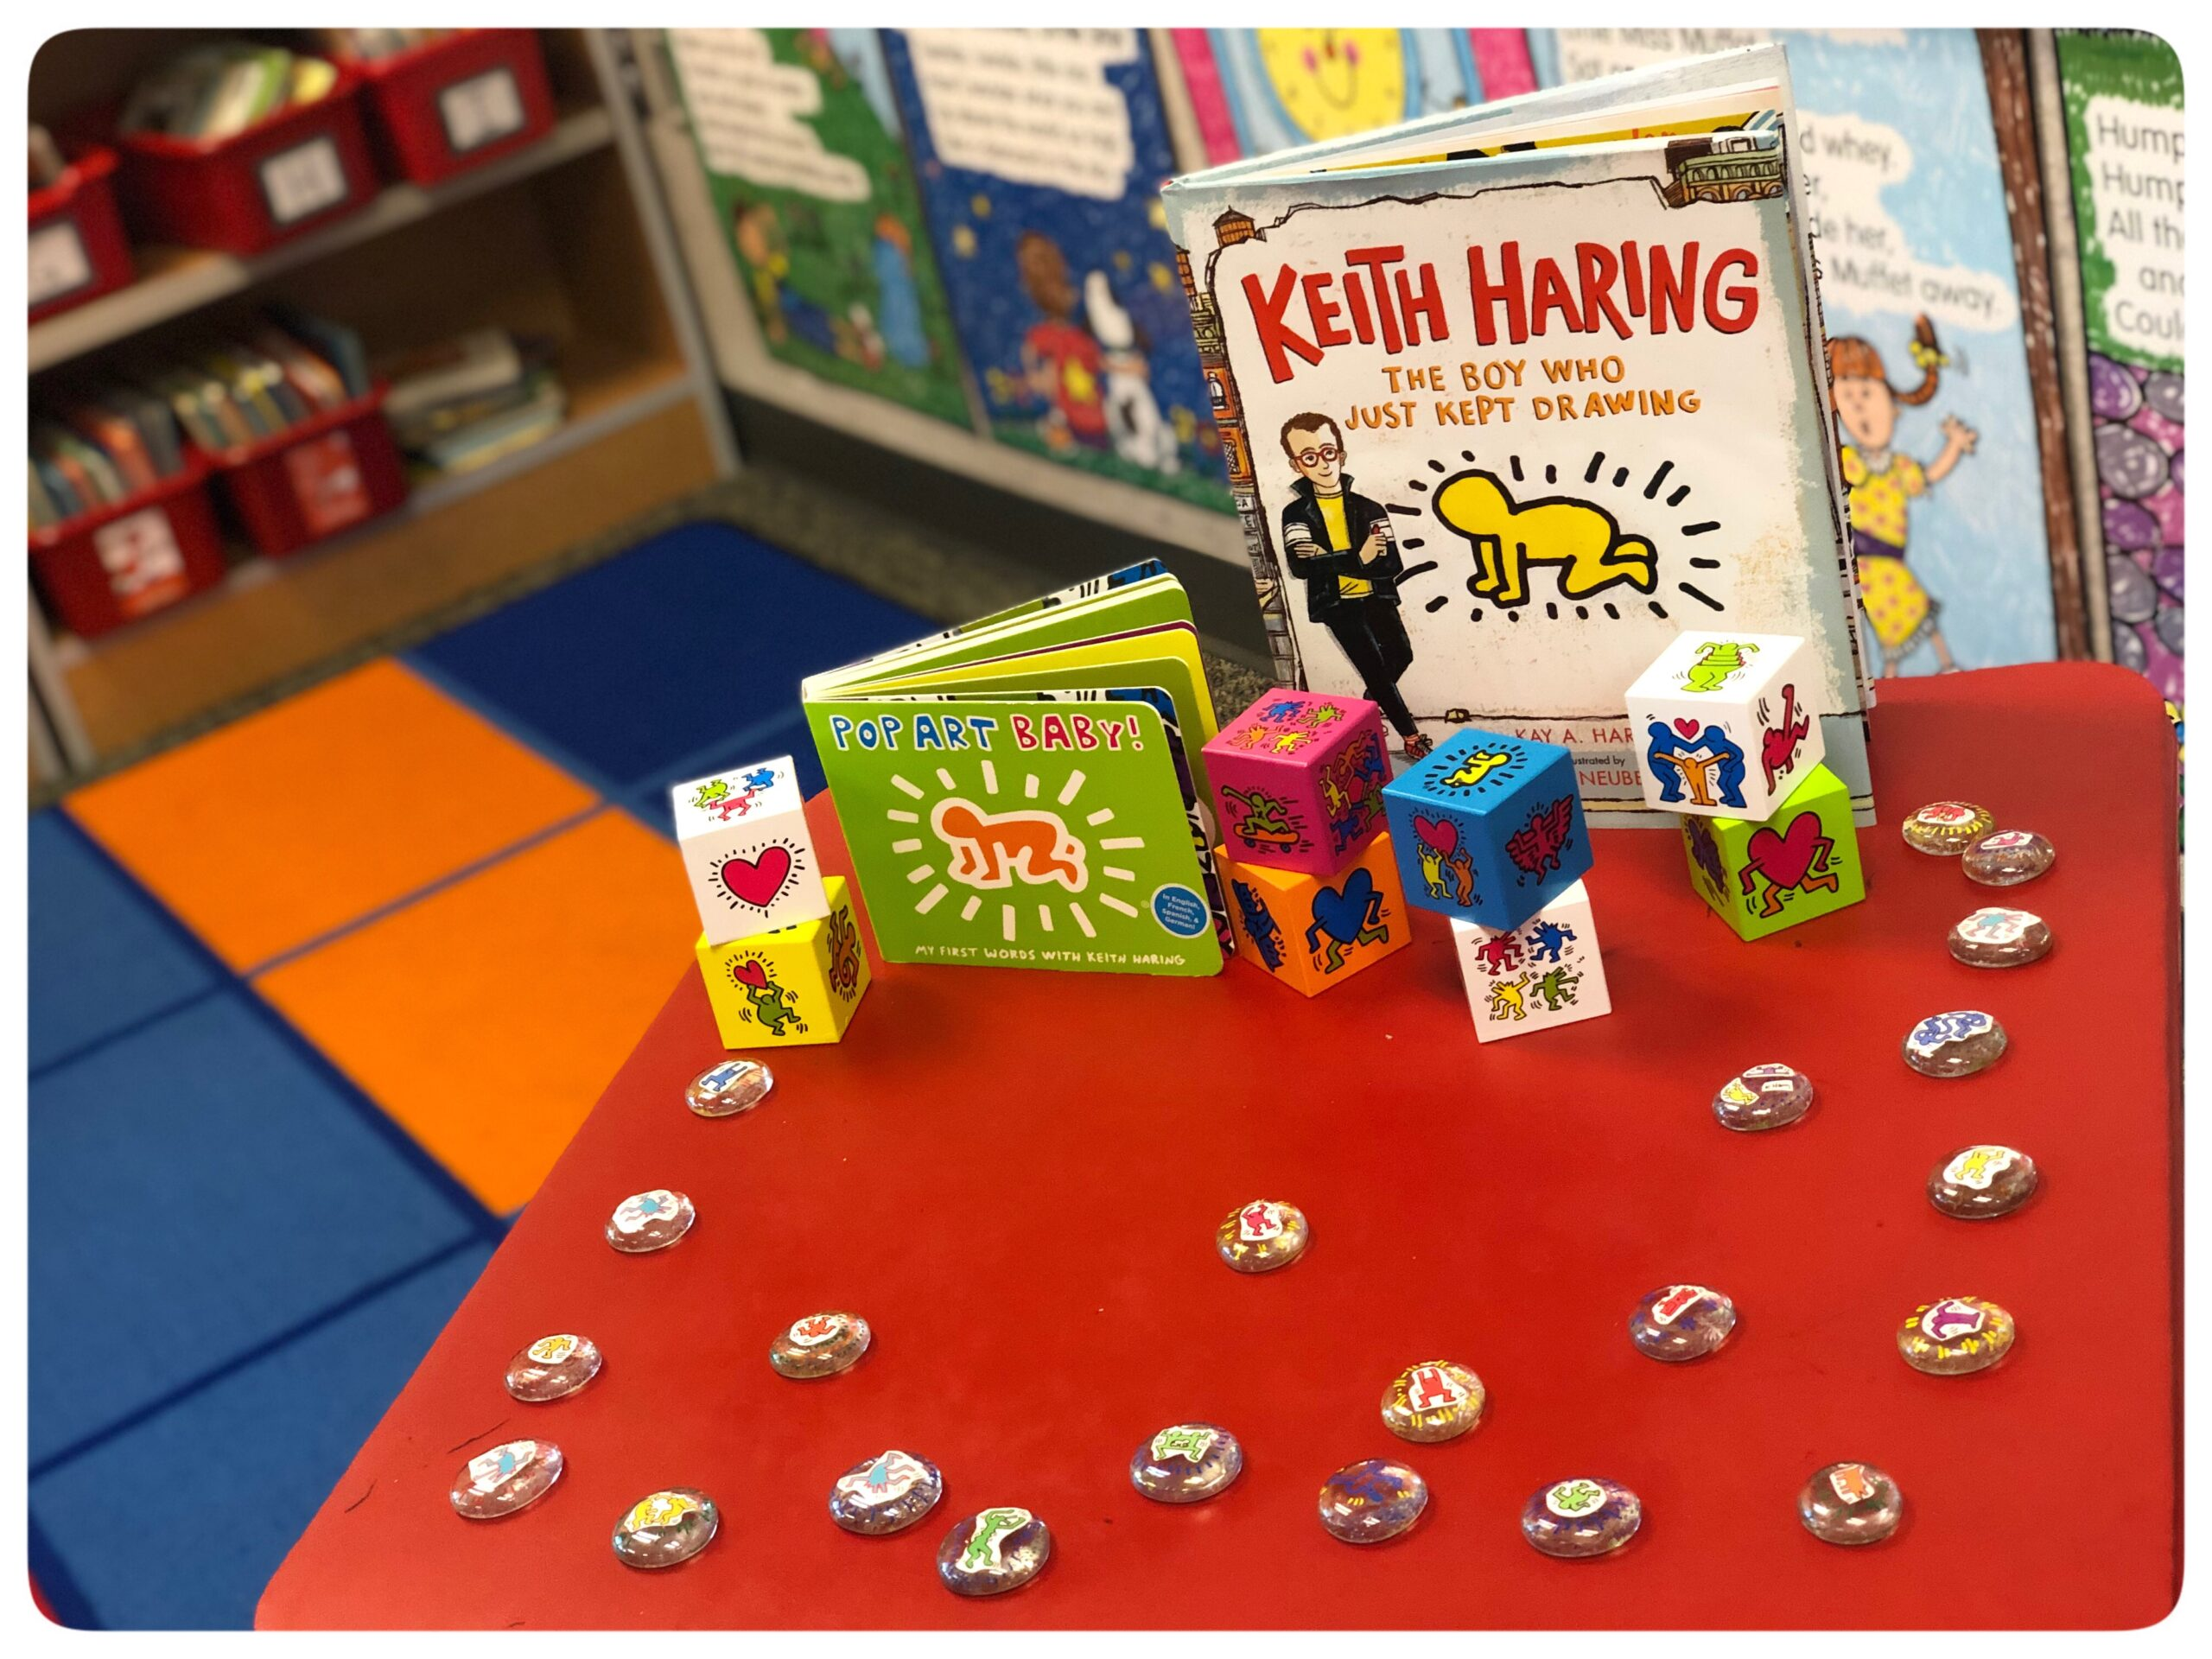 Sensory Table: Keith Haring, a famous artist, is primarily known for solid, bold lines with vibrant colors.  His vibrant artwork tells of friendship, fun, and acceptance. Today we're creating interactive ways to think about Pop Art while learning about Keith Haring